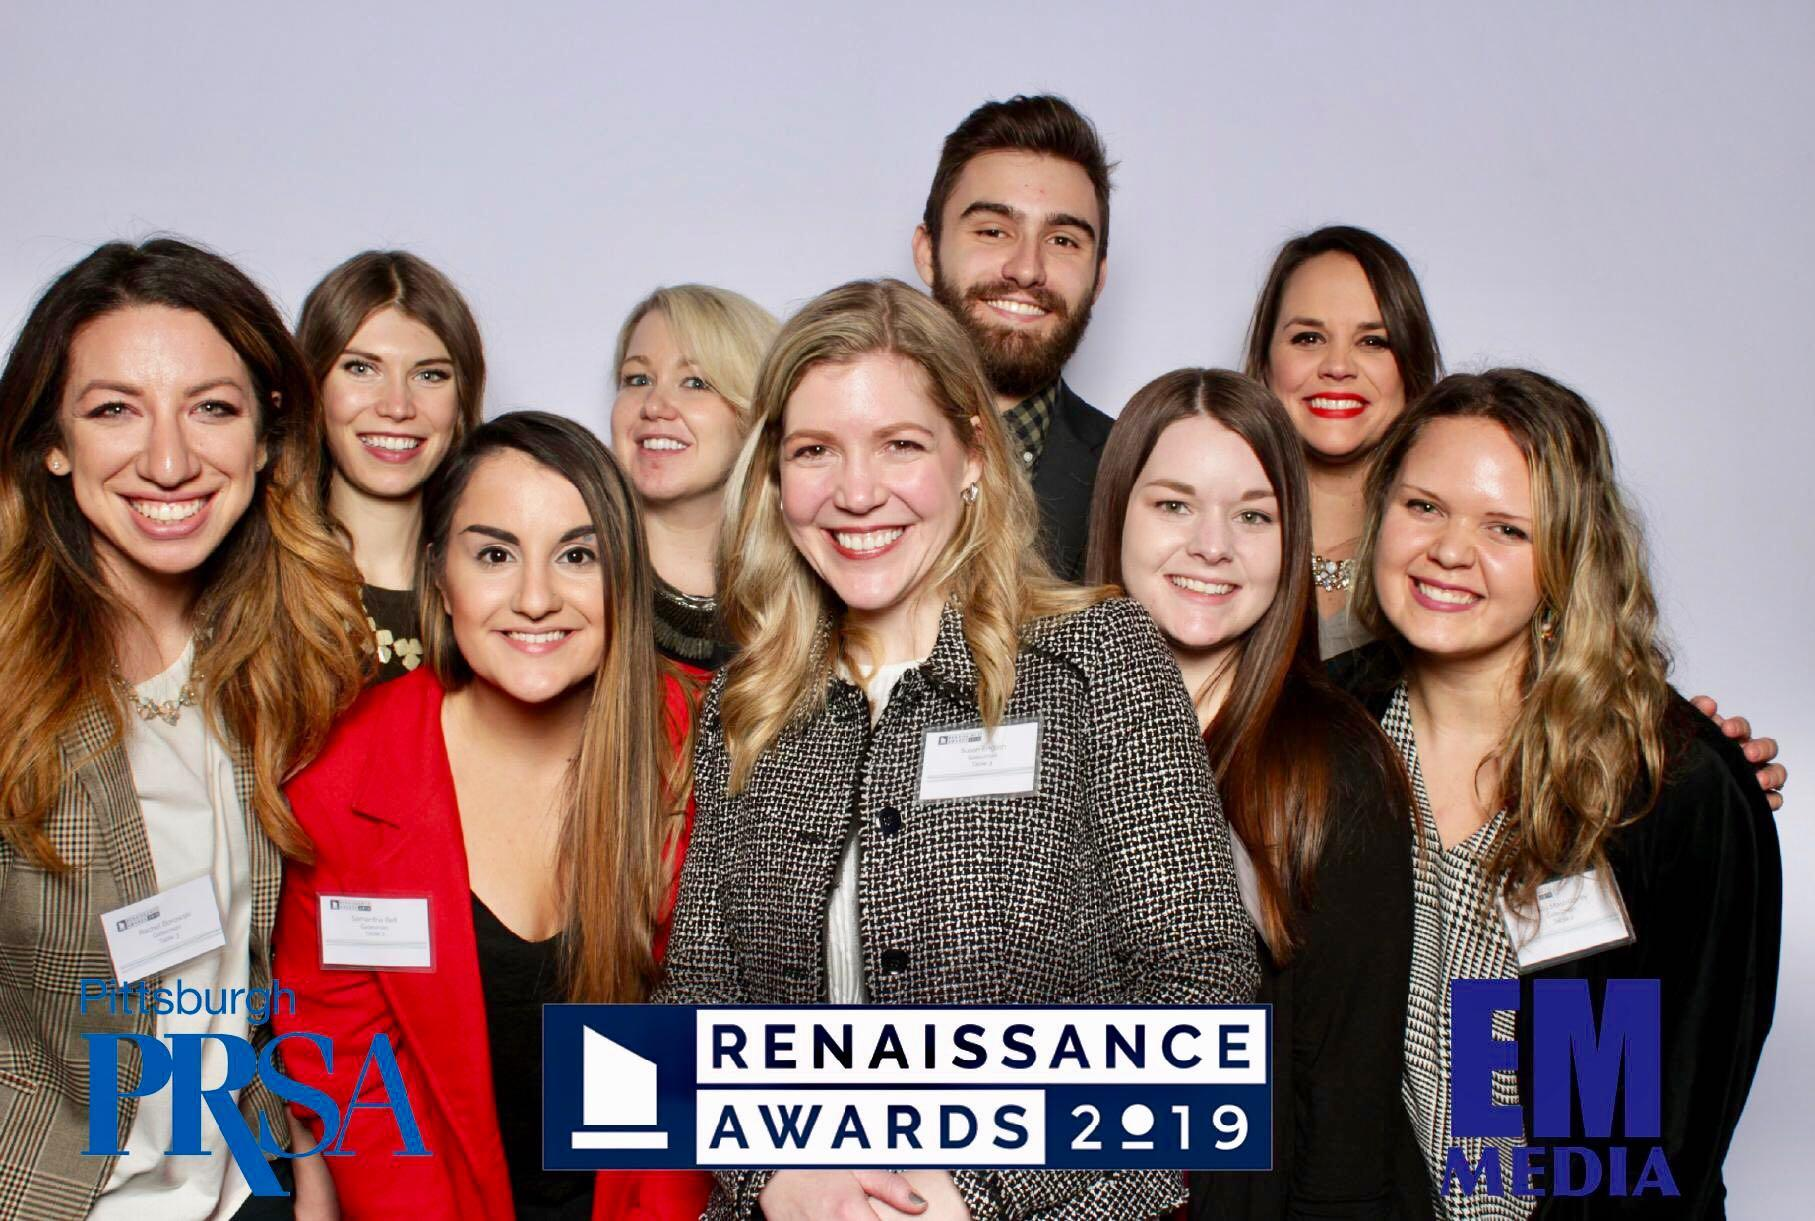 Gatesman Agency - GATESMAN PR AWARDED BEST IN SHOW AT 2019 PRSA RENAISSANCE AWARDS